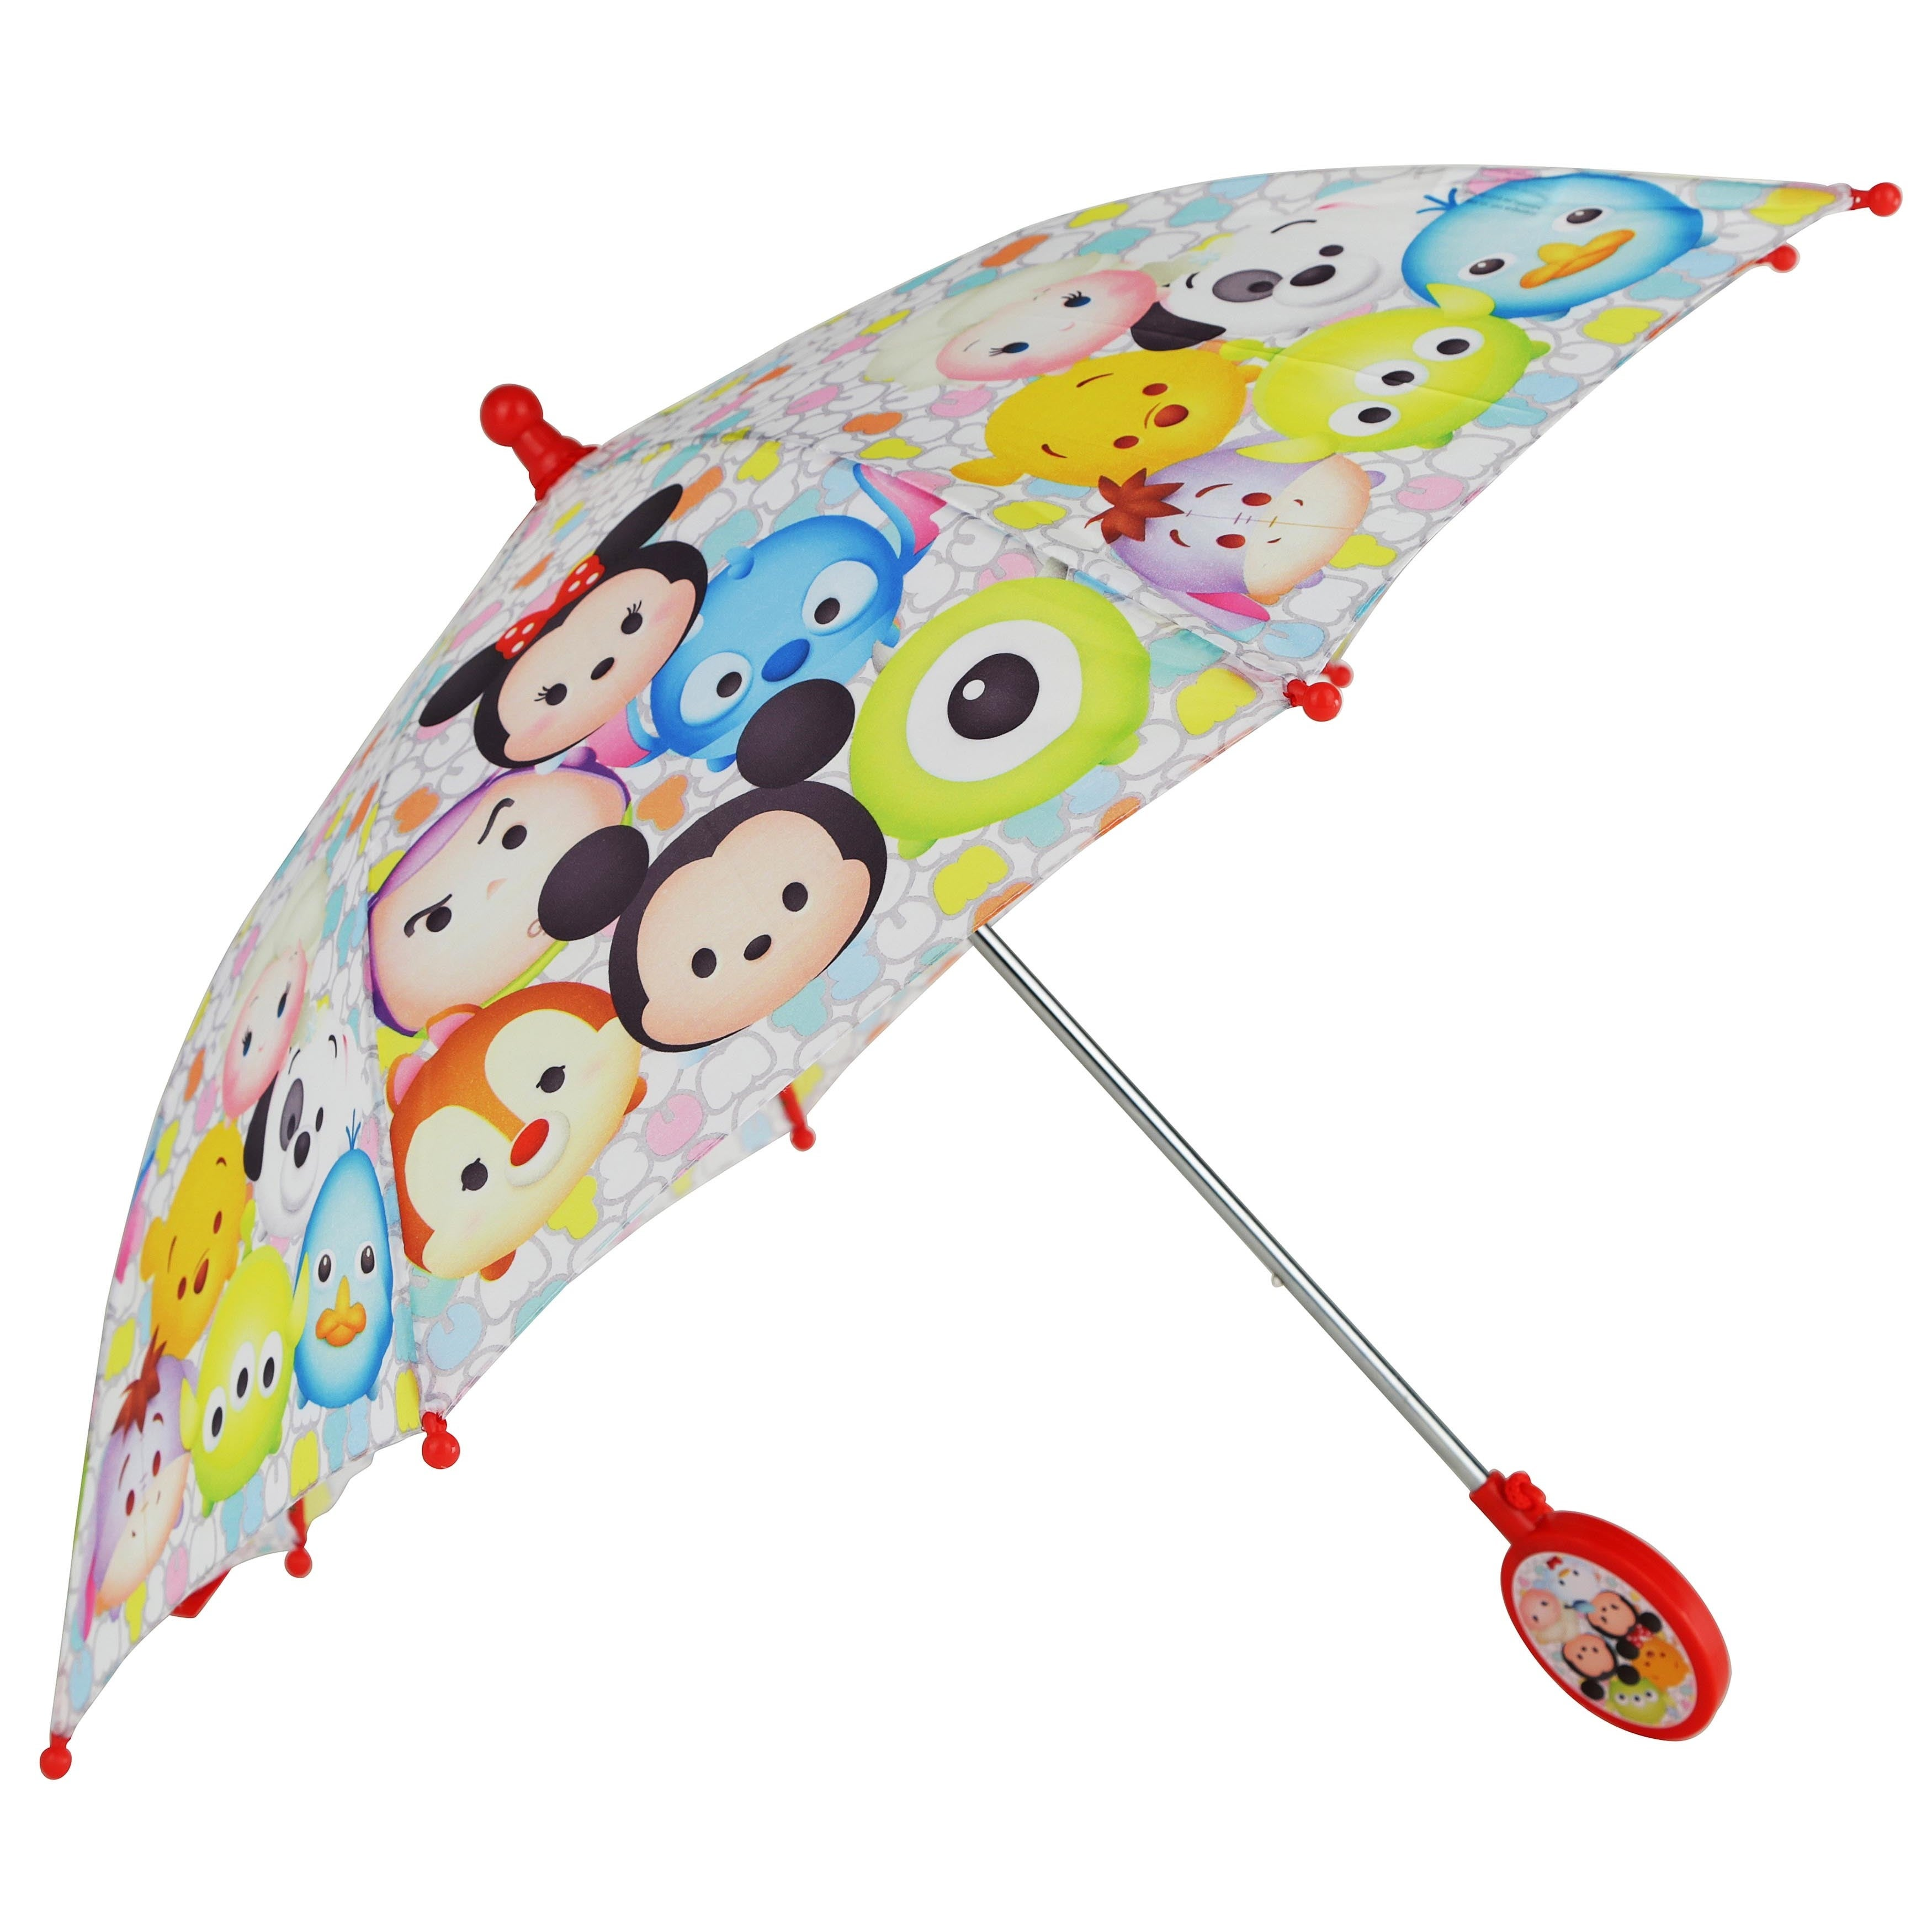 Disney Tsum Tsum Multicolor Polyester 3-D Handle Umbrella...